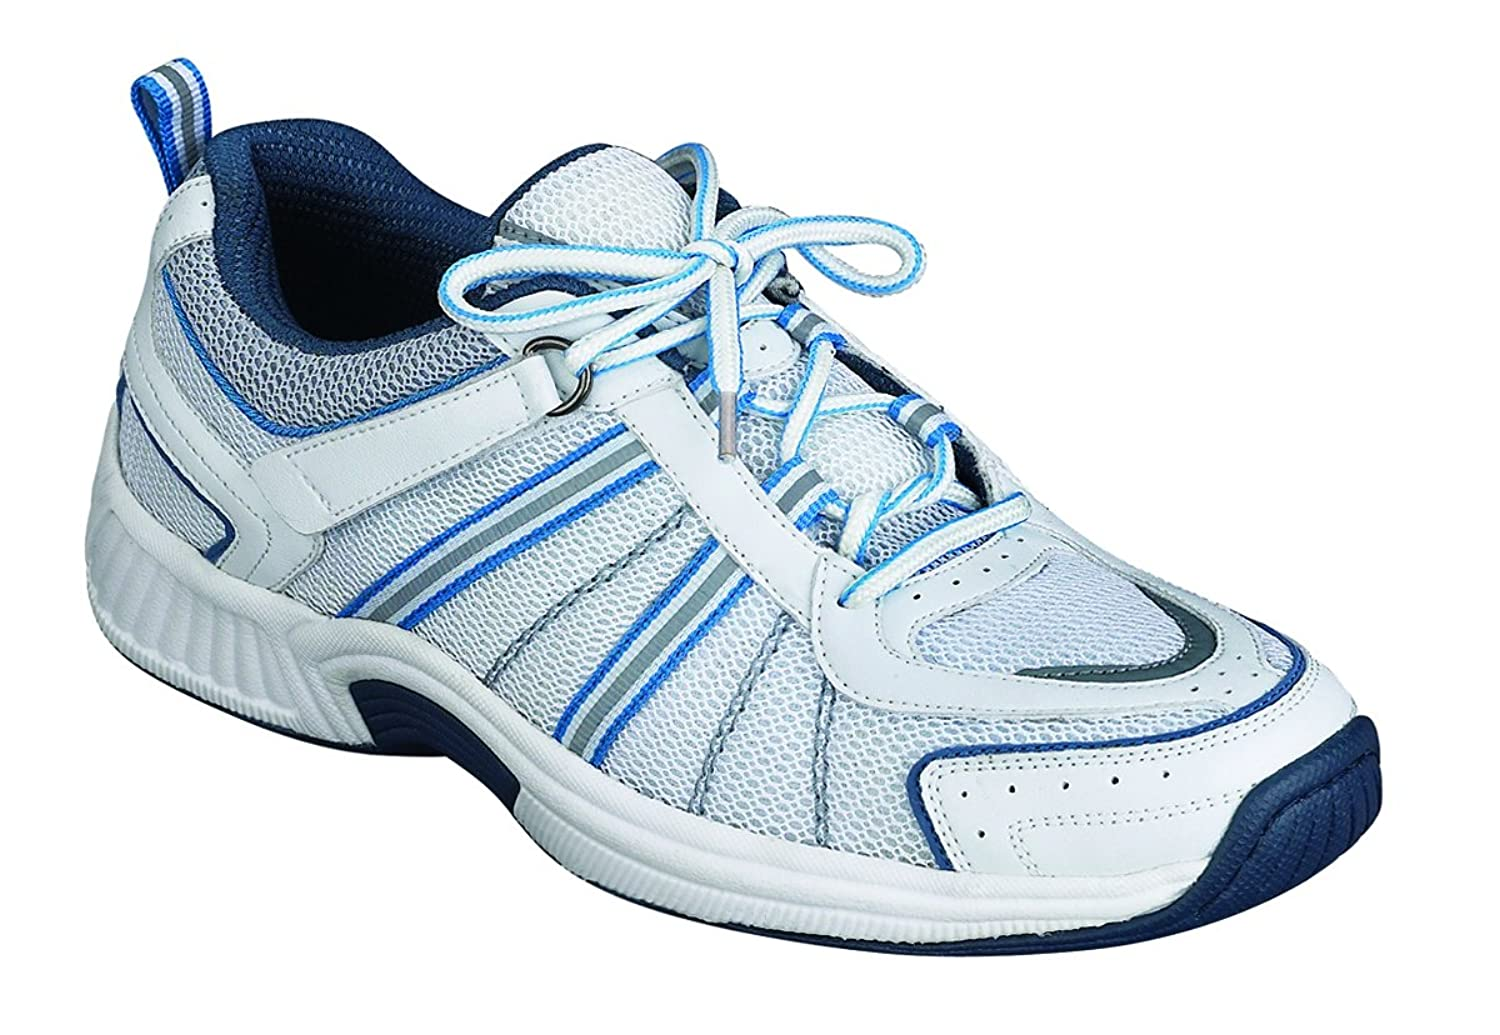 Orthofeet tahoe athletic shoes